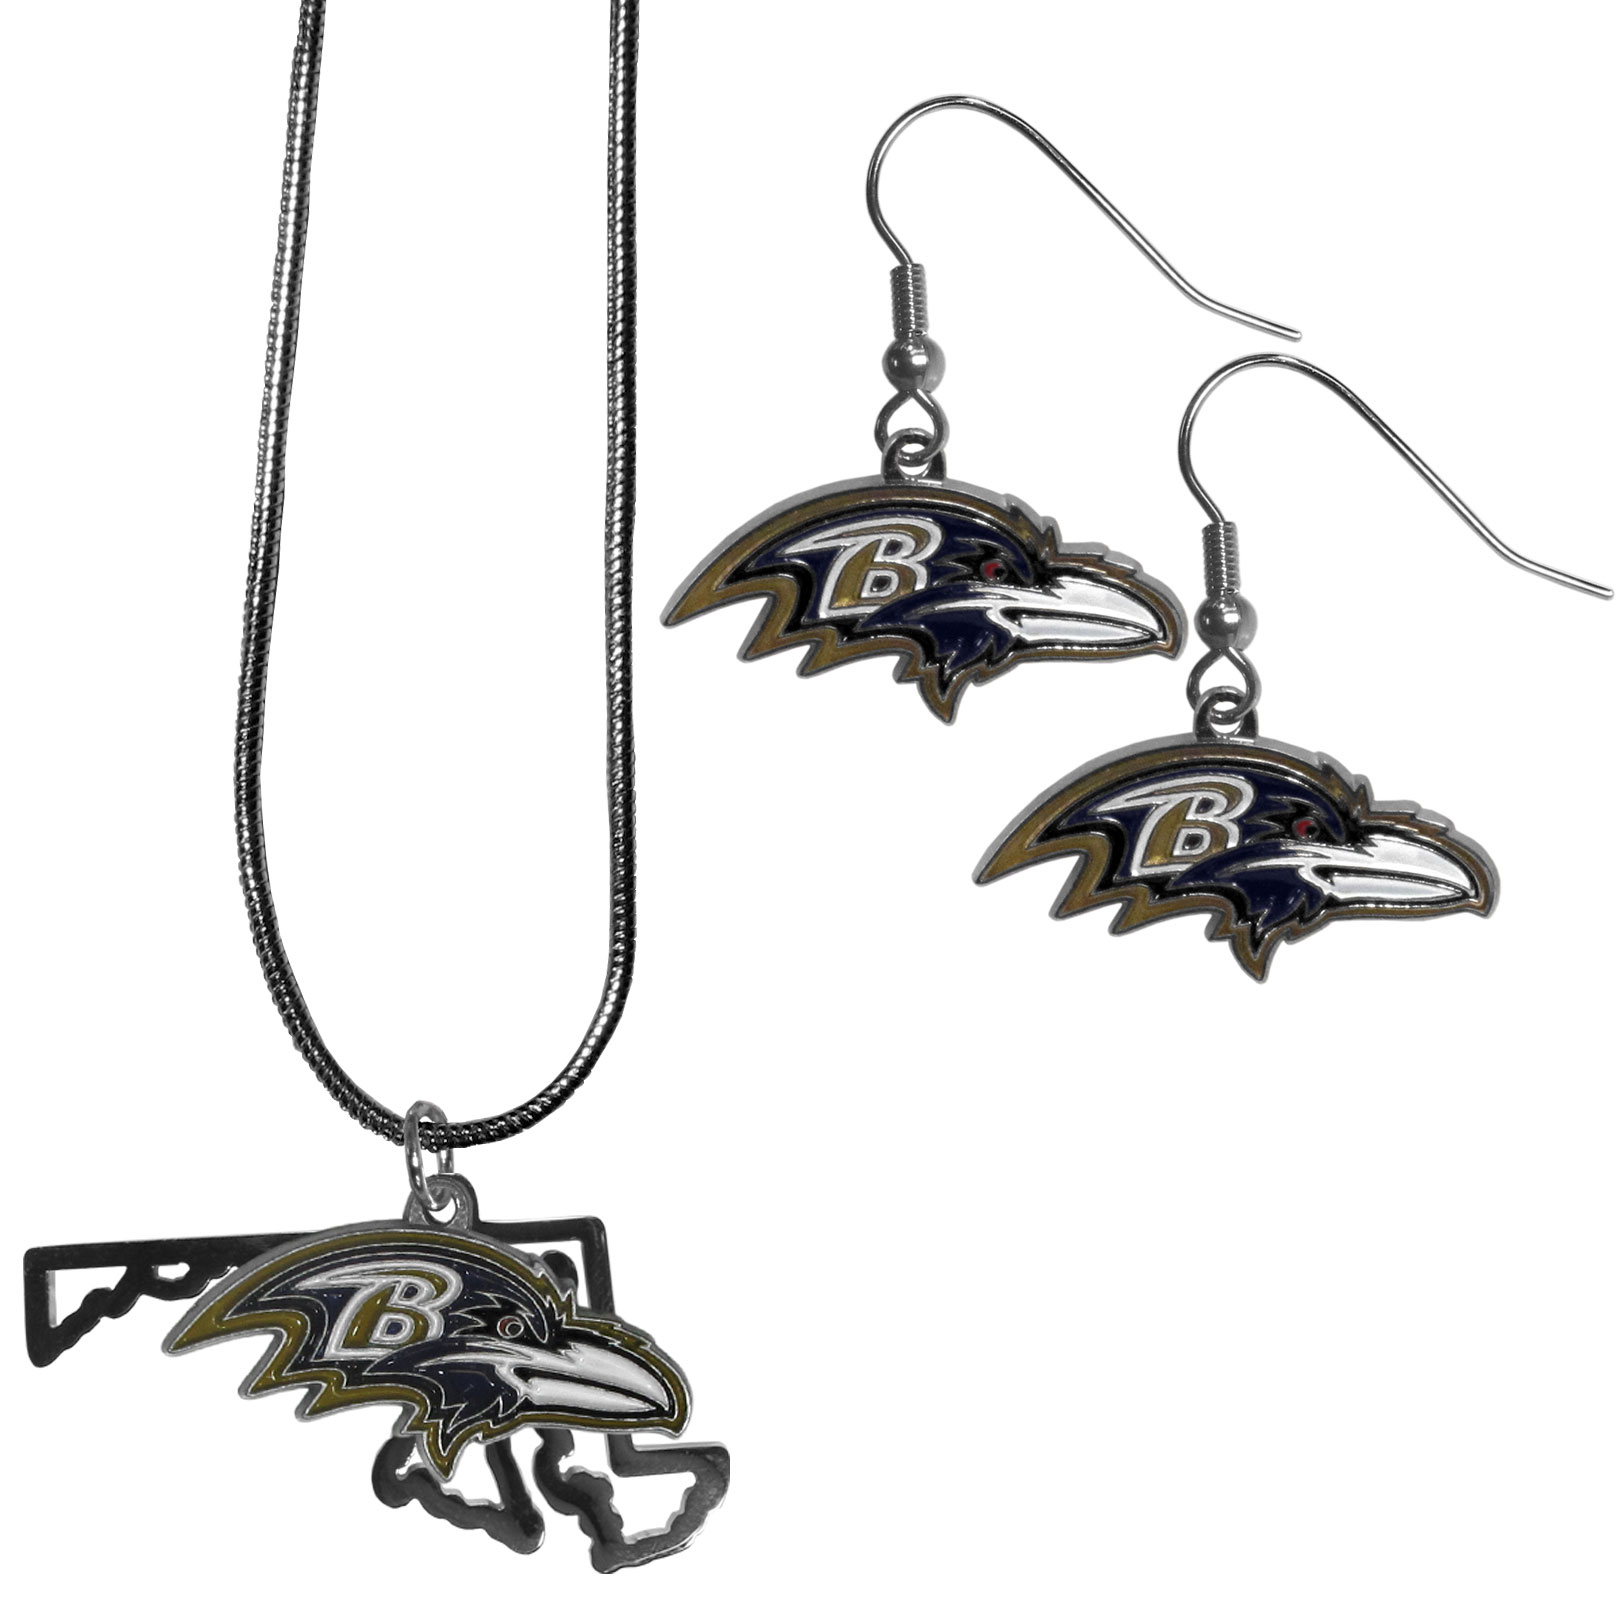 Baltimore Ravens Dangle Earrings and State Necklace Set - Get in on the trend! State themes are a trend that just keeps getting more popular and this jewelry set takes the state style and give it a sporty twist with a Baltimore Ravens necklace that features an Arizona state outline charm paired with a beautiful team charm and matching team charm dangle earrings. The earrings feature hypoallergenic fishhook posts that are nickel free.